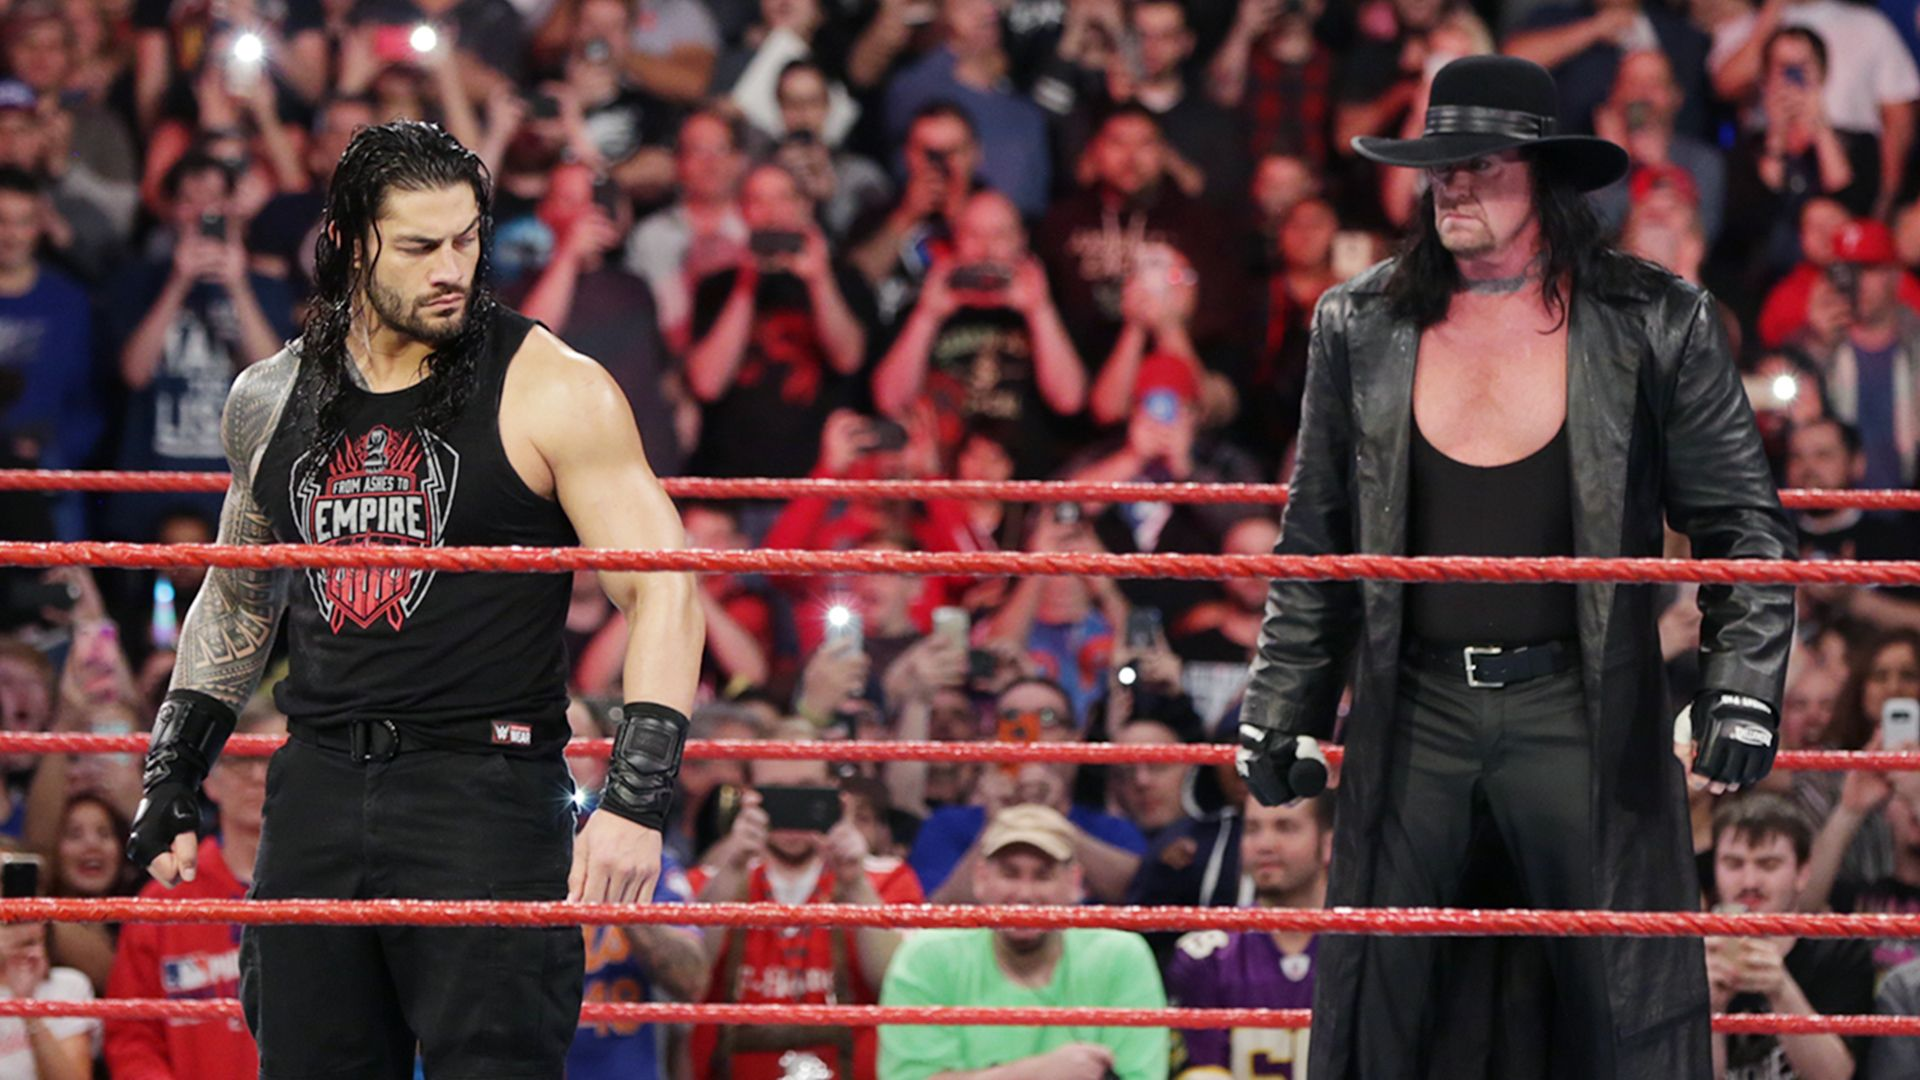 Bad news for Undertaker's fans as he might not feature on WWE SummerSlam